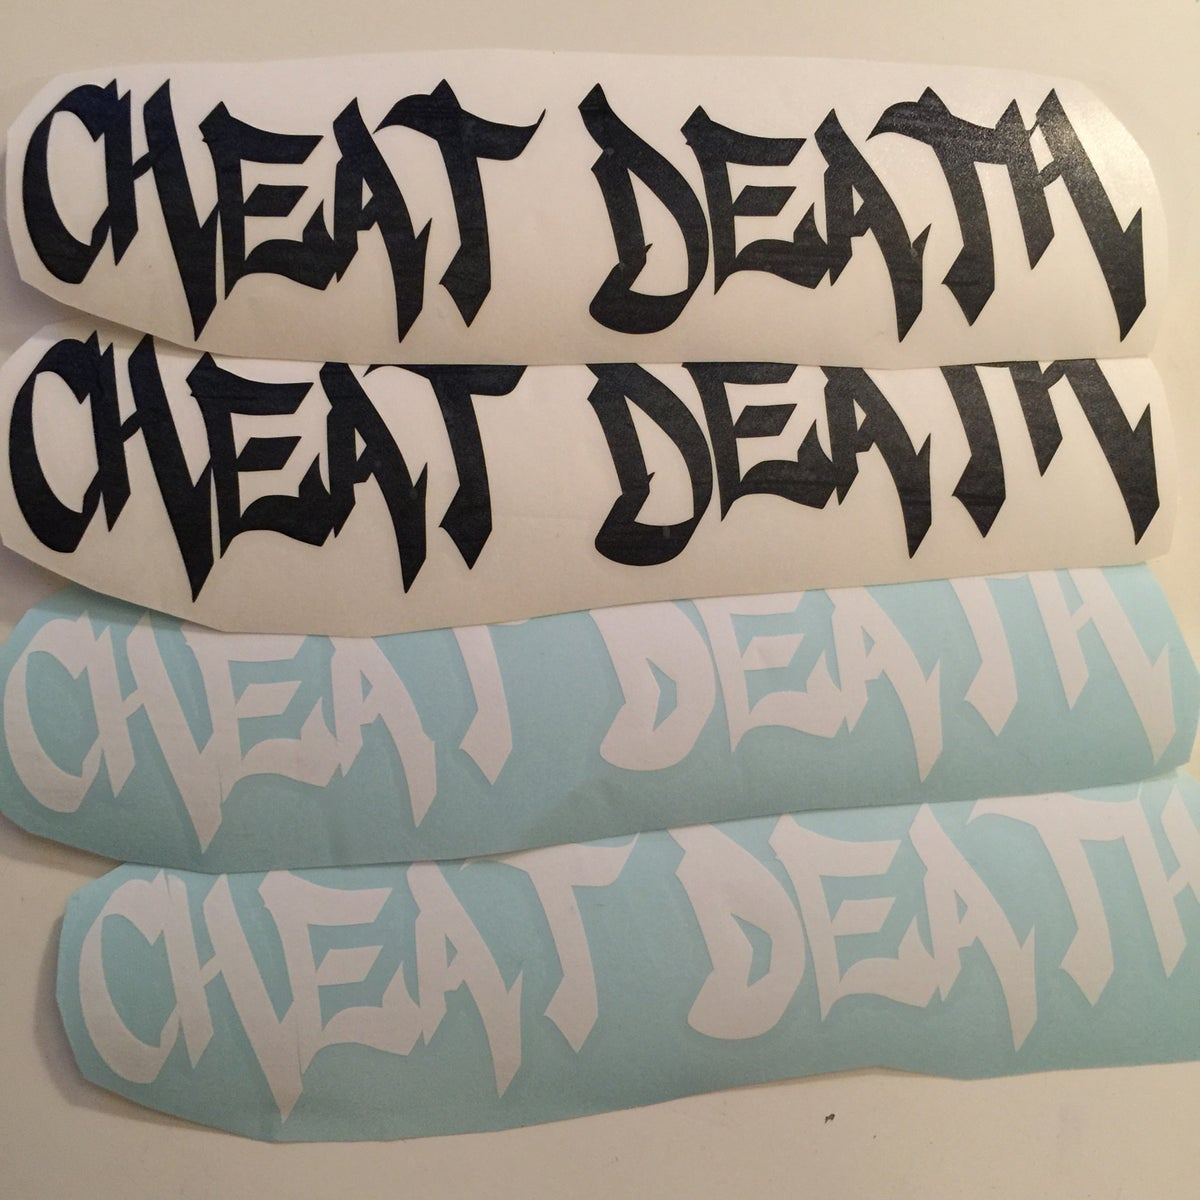 Image of Cheat Death tagger Decal